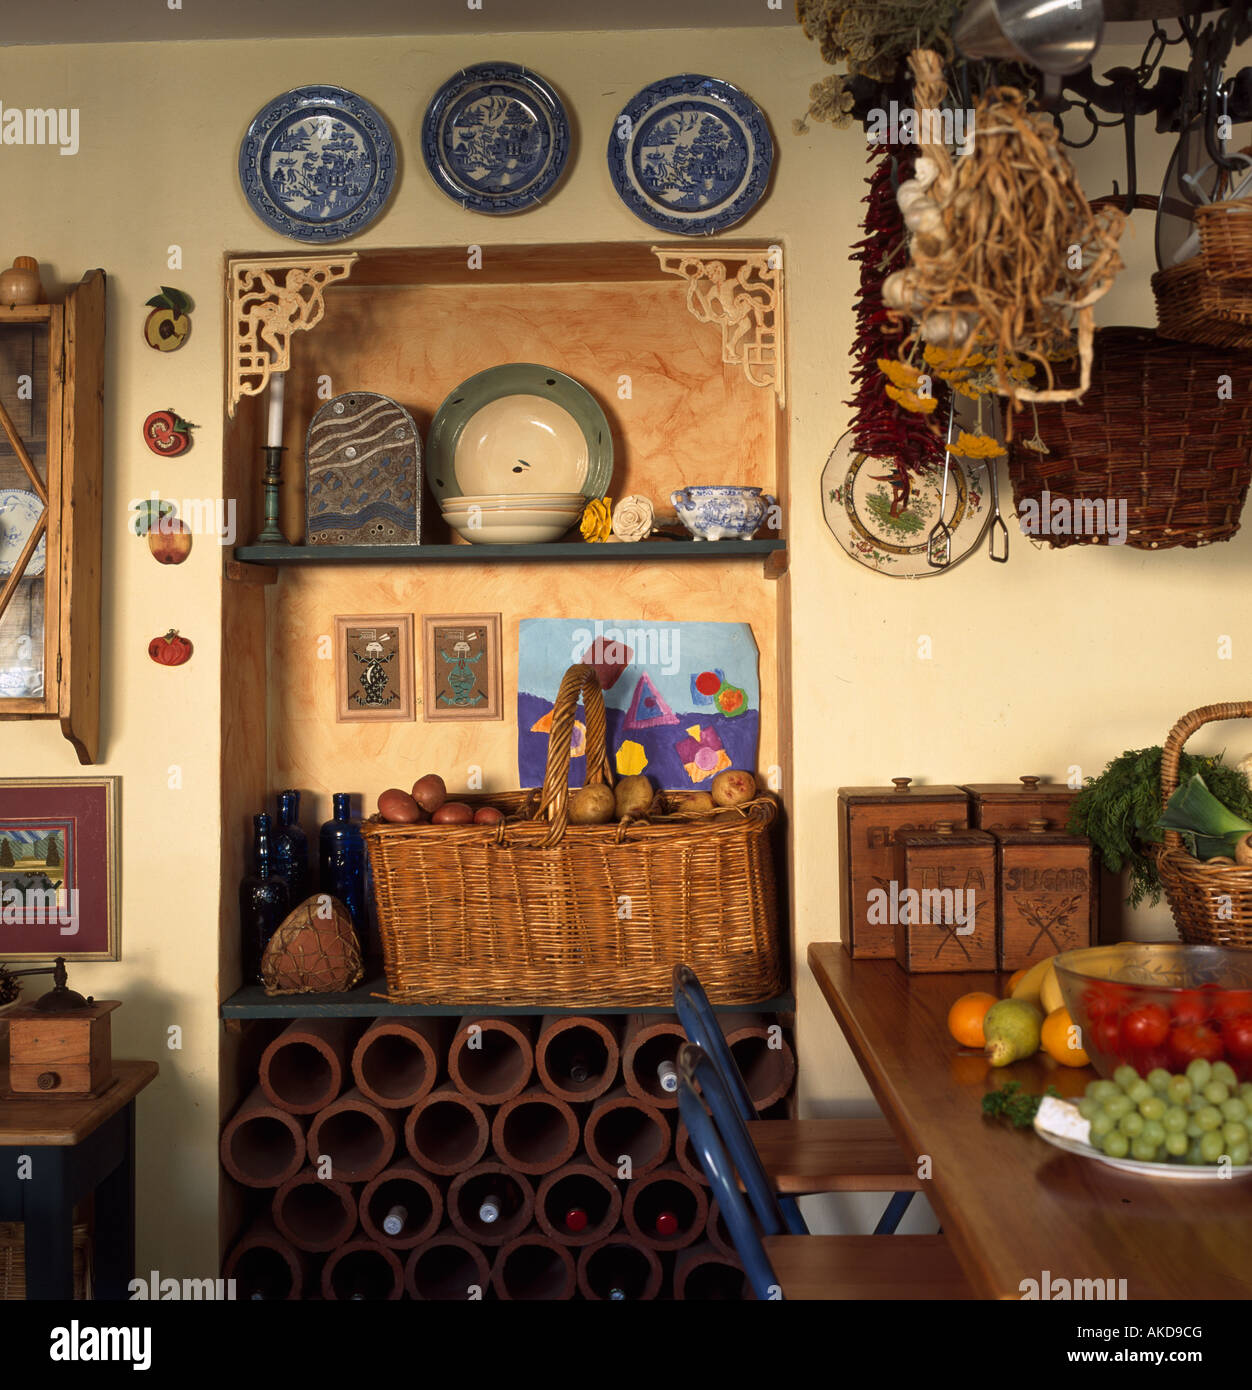 Kitchen Alcove Large Basket And Terracotta Wine Storage In Kitchen Alcove Stock